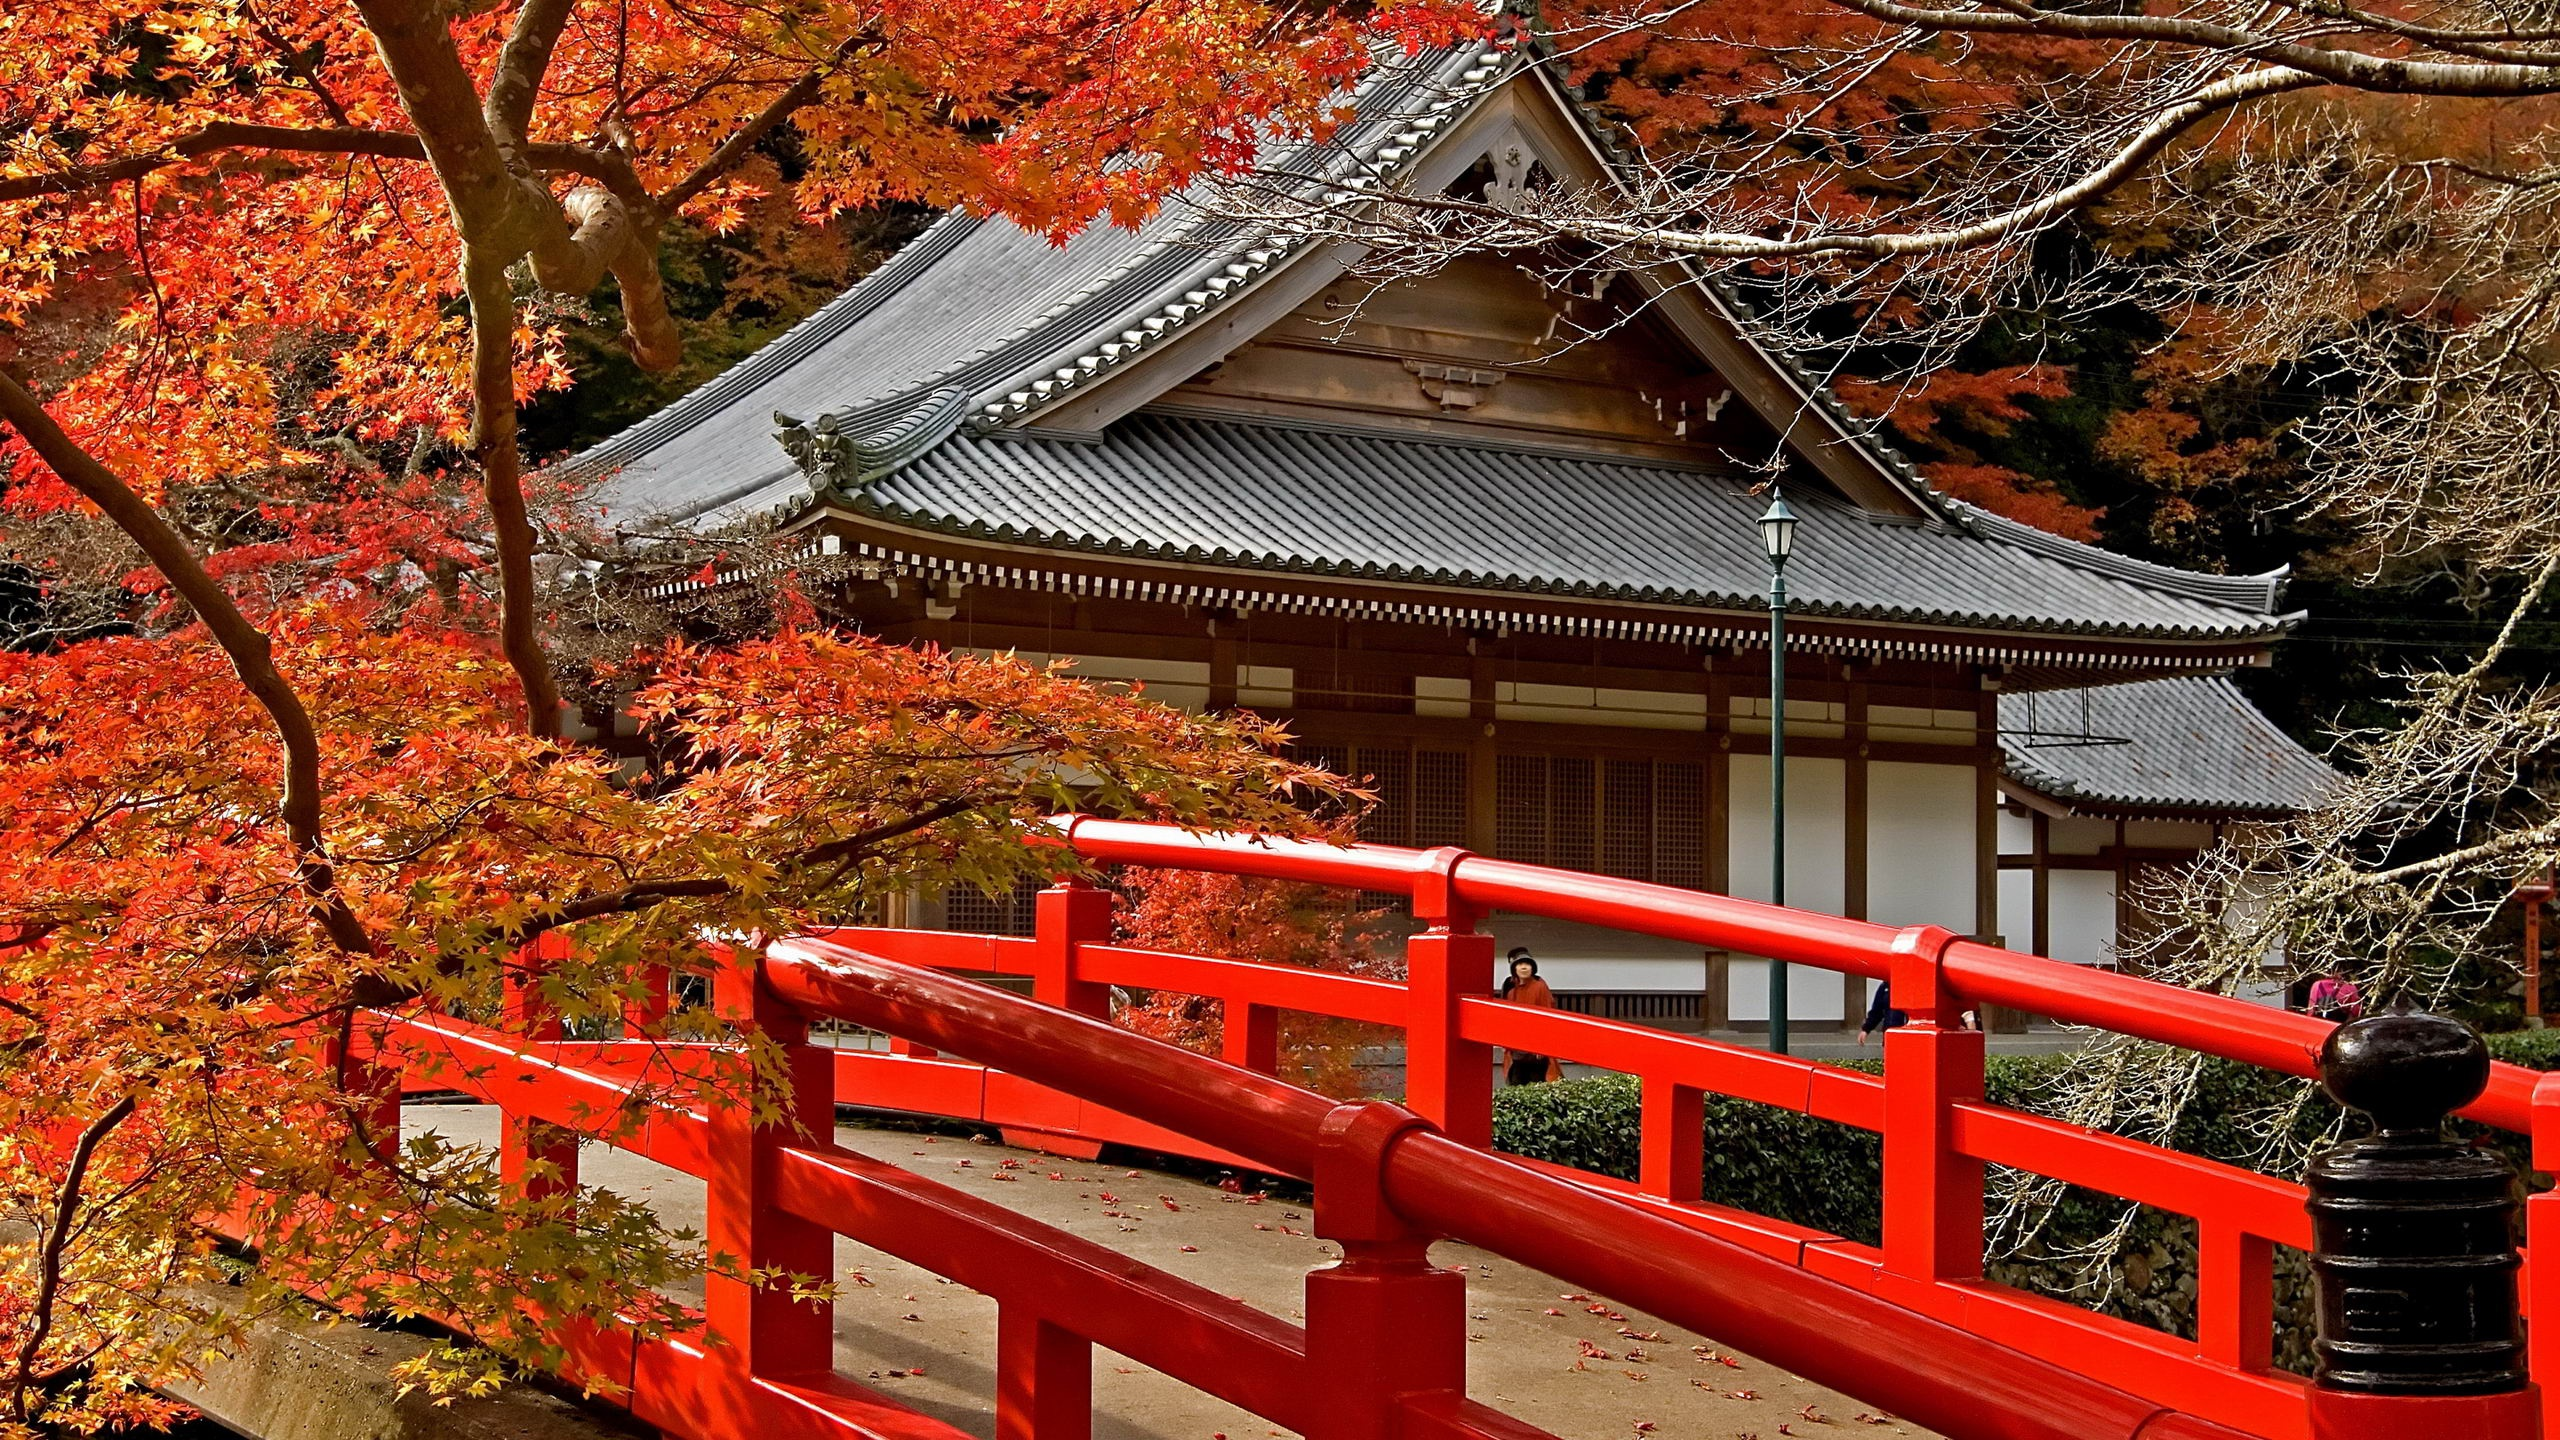 2560x1440 Pagoda Japan Maple Desktop PC And Mac Wallpaper